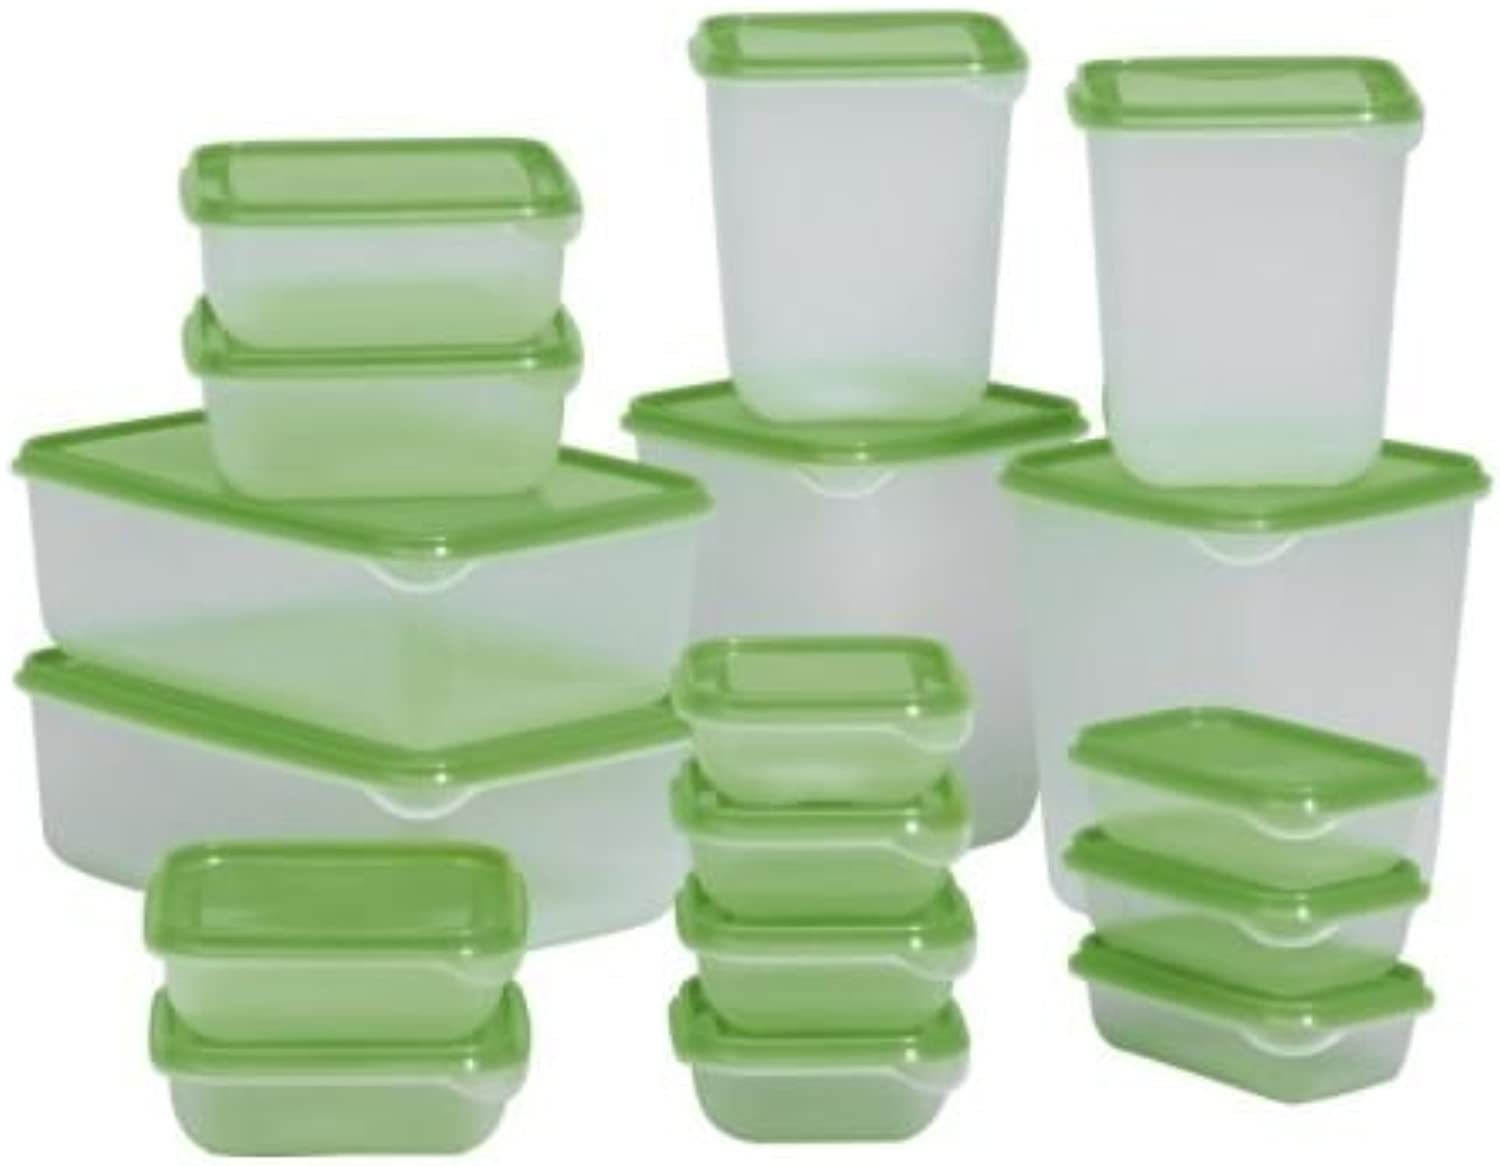 Pruta Food Container 601.496.73, Set of 17, Green, 3-Pack